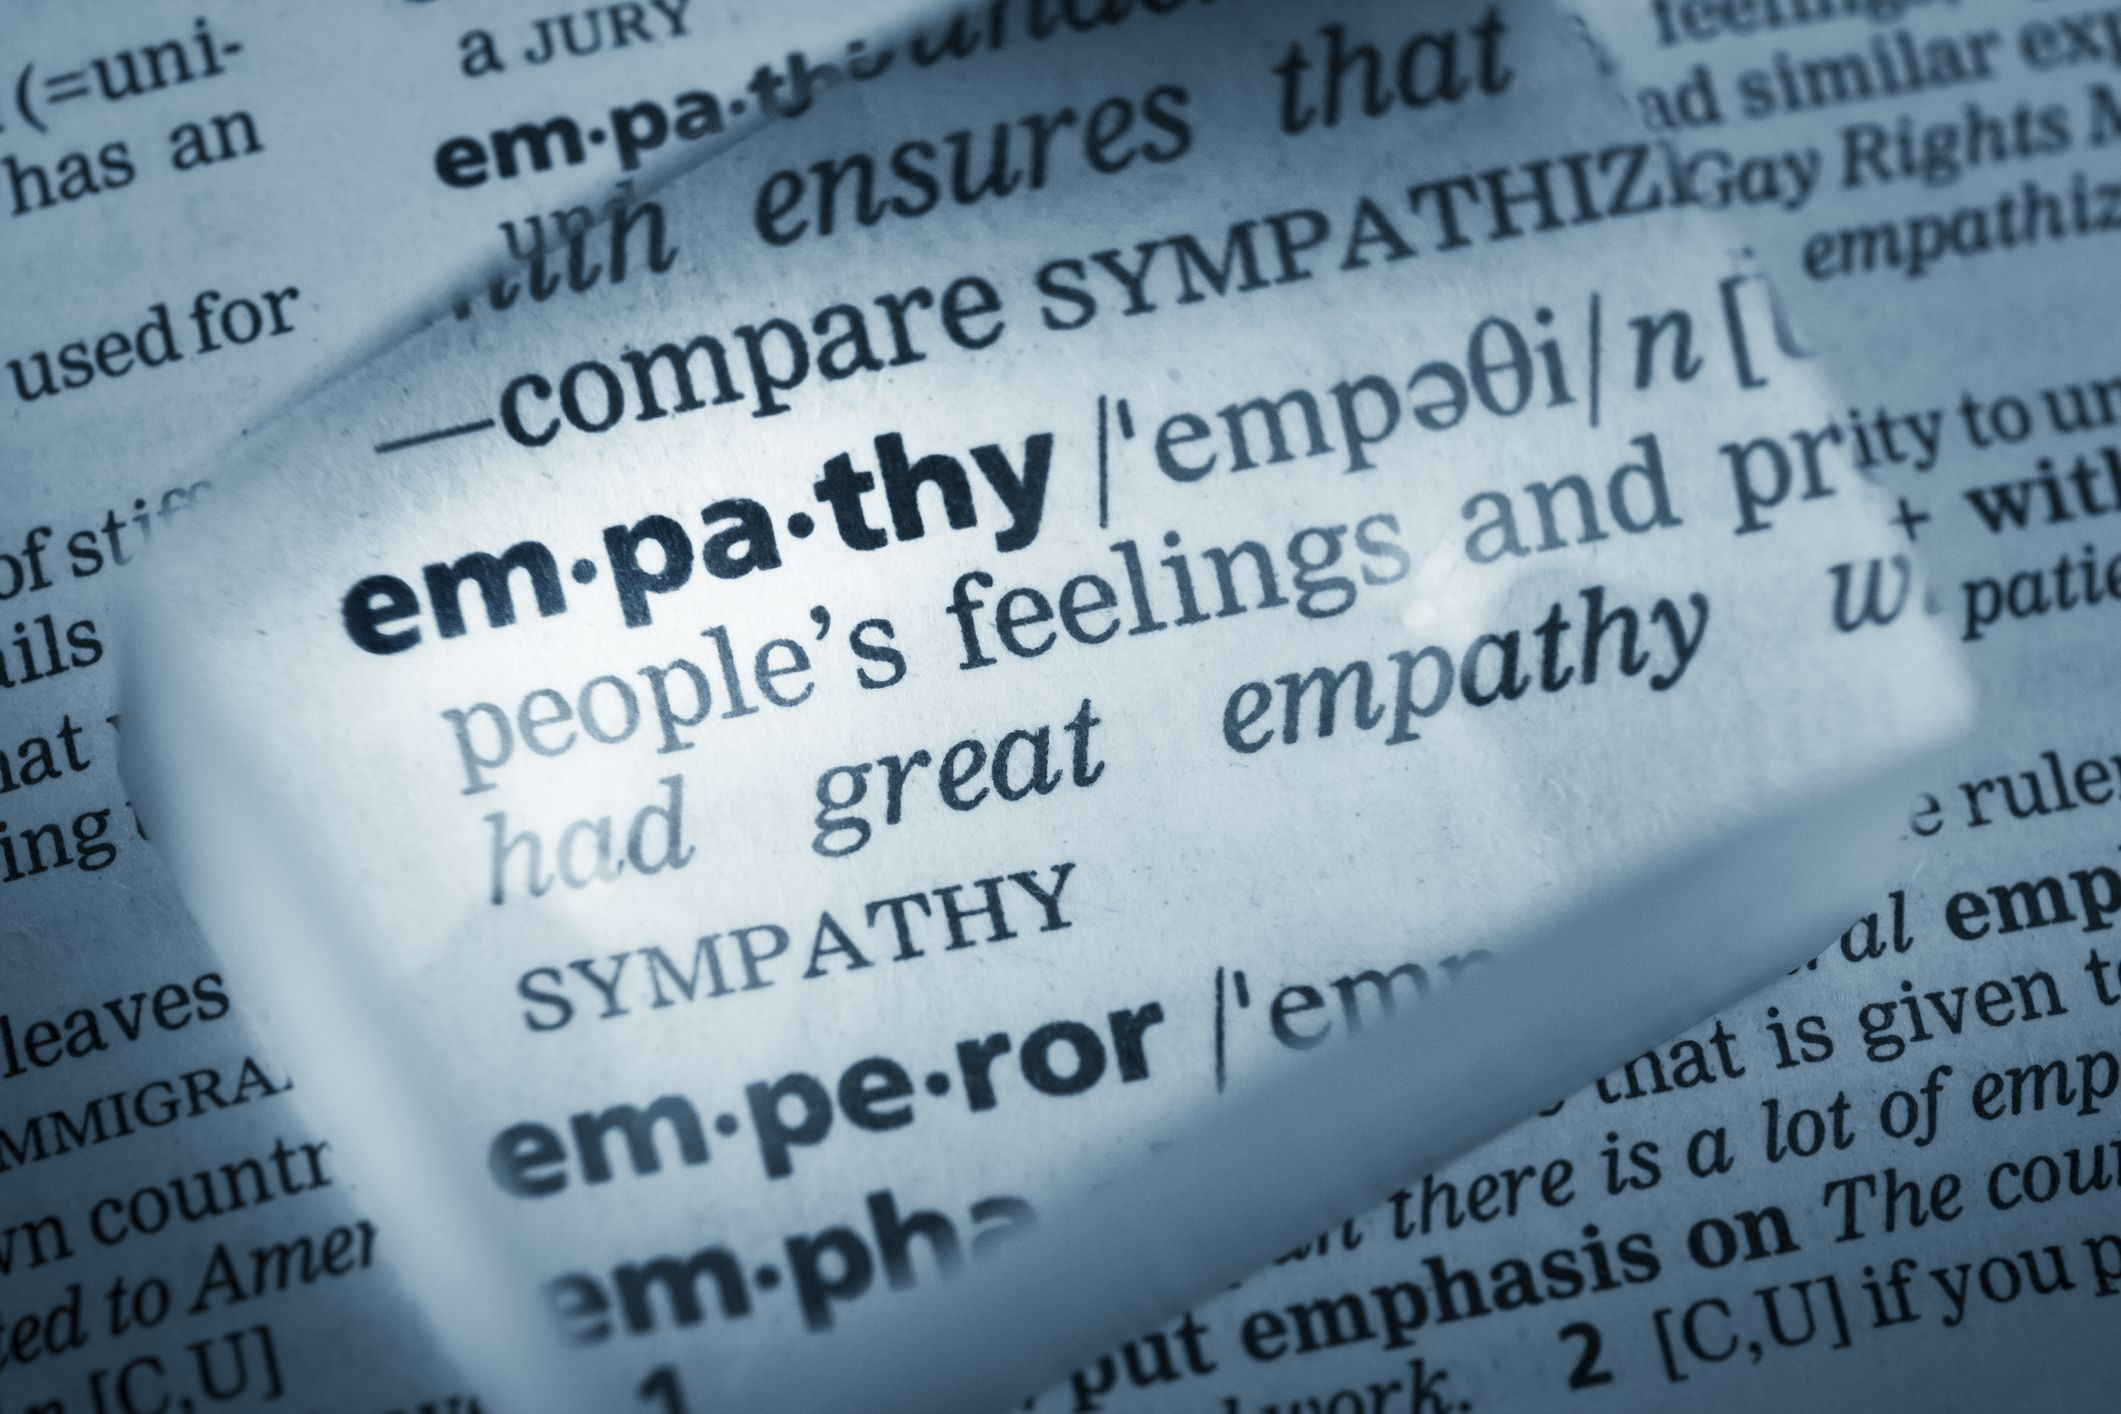 The definition of empathy